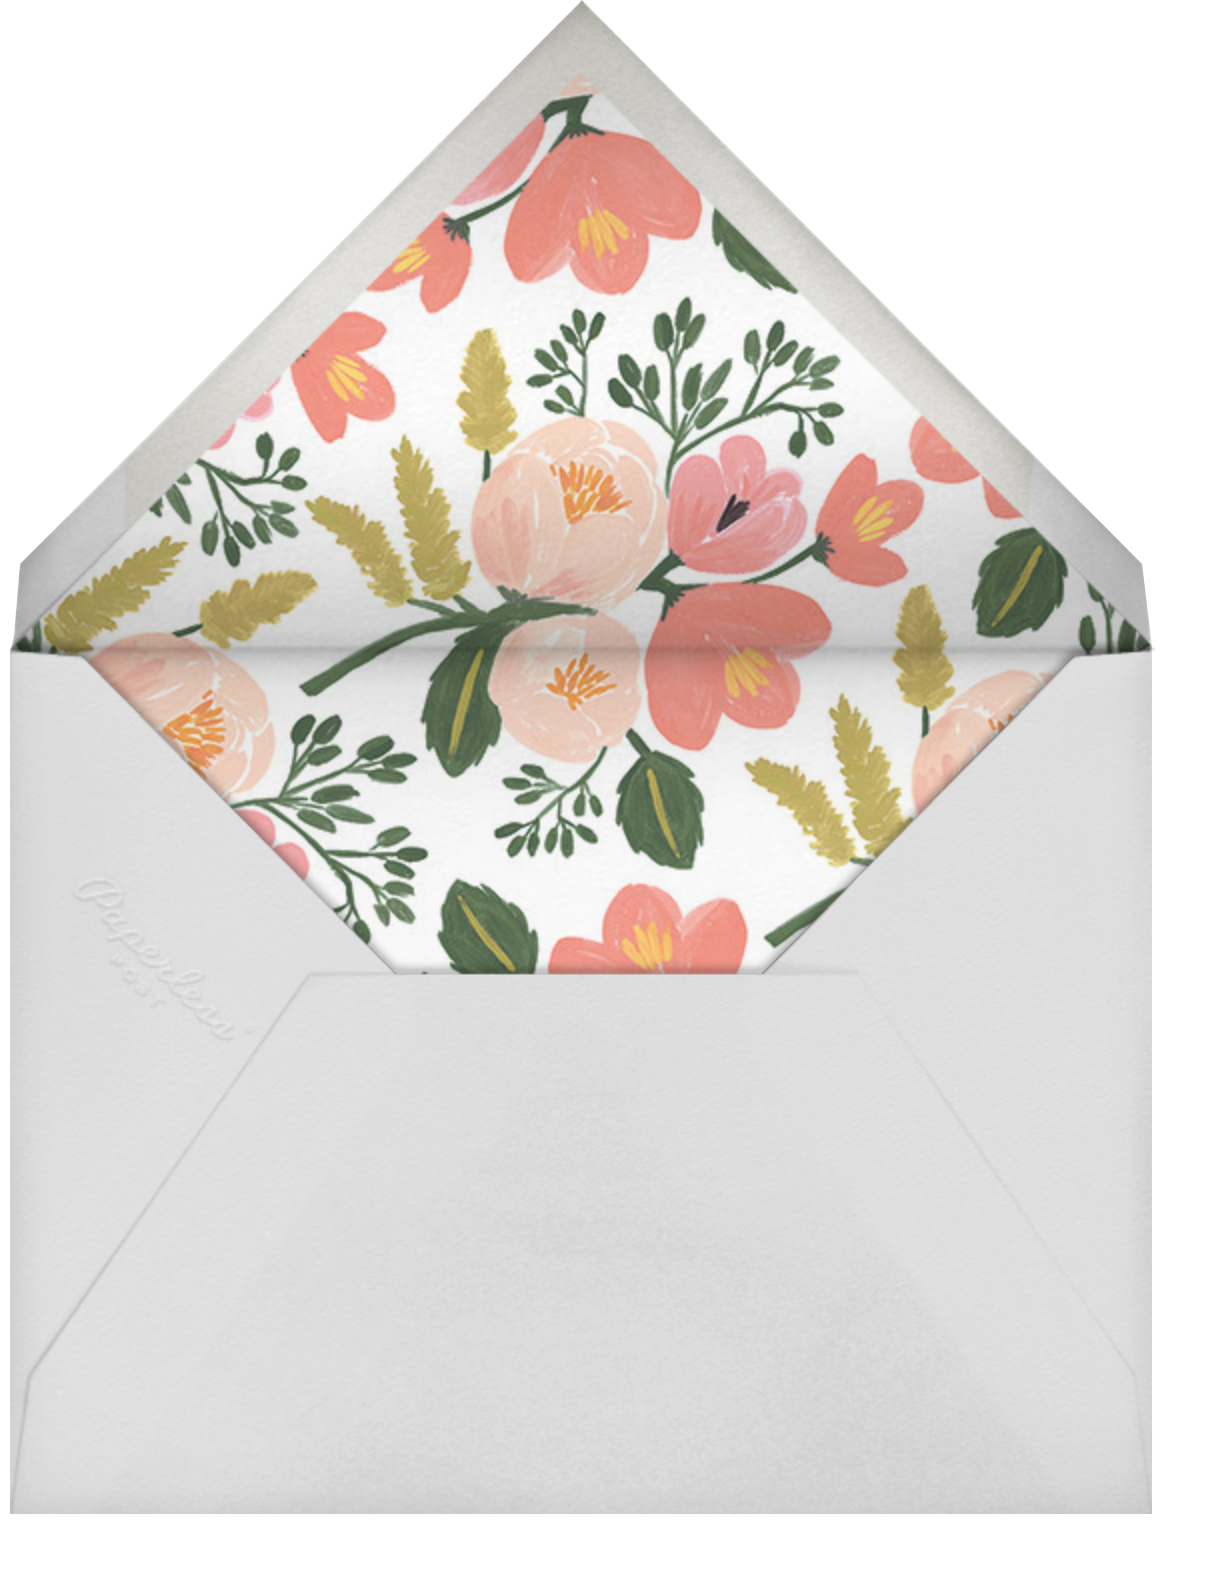 Botanic Year (Horizontal) - Black - Rifle Paper Co. - New Year - envelope back